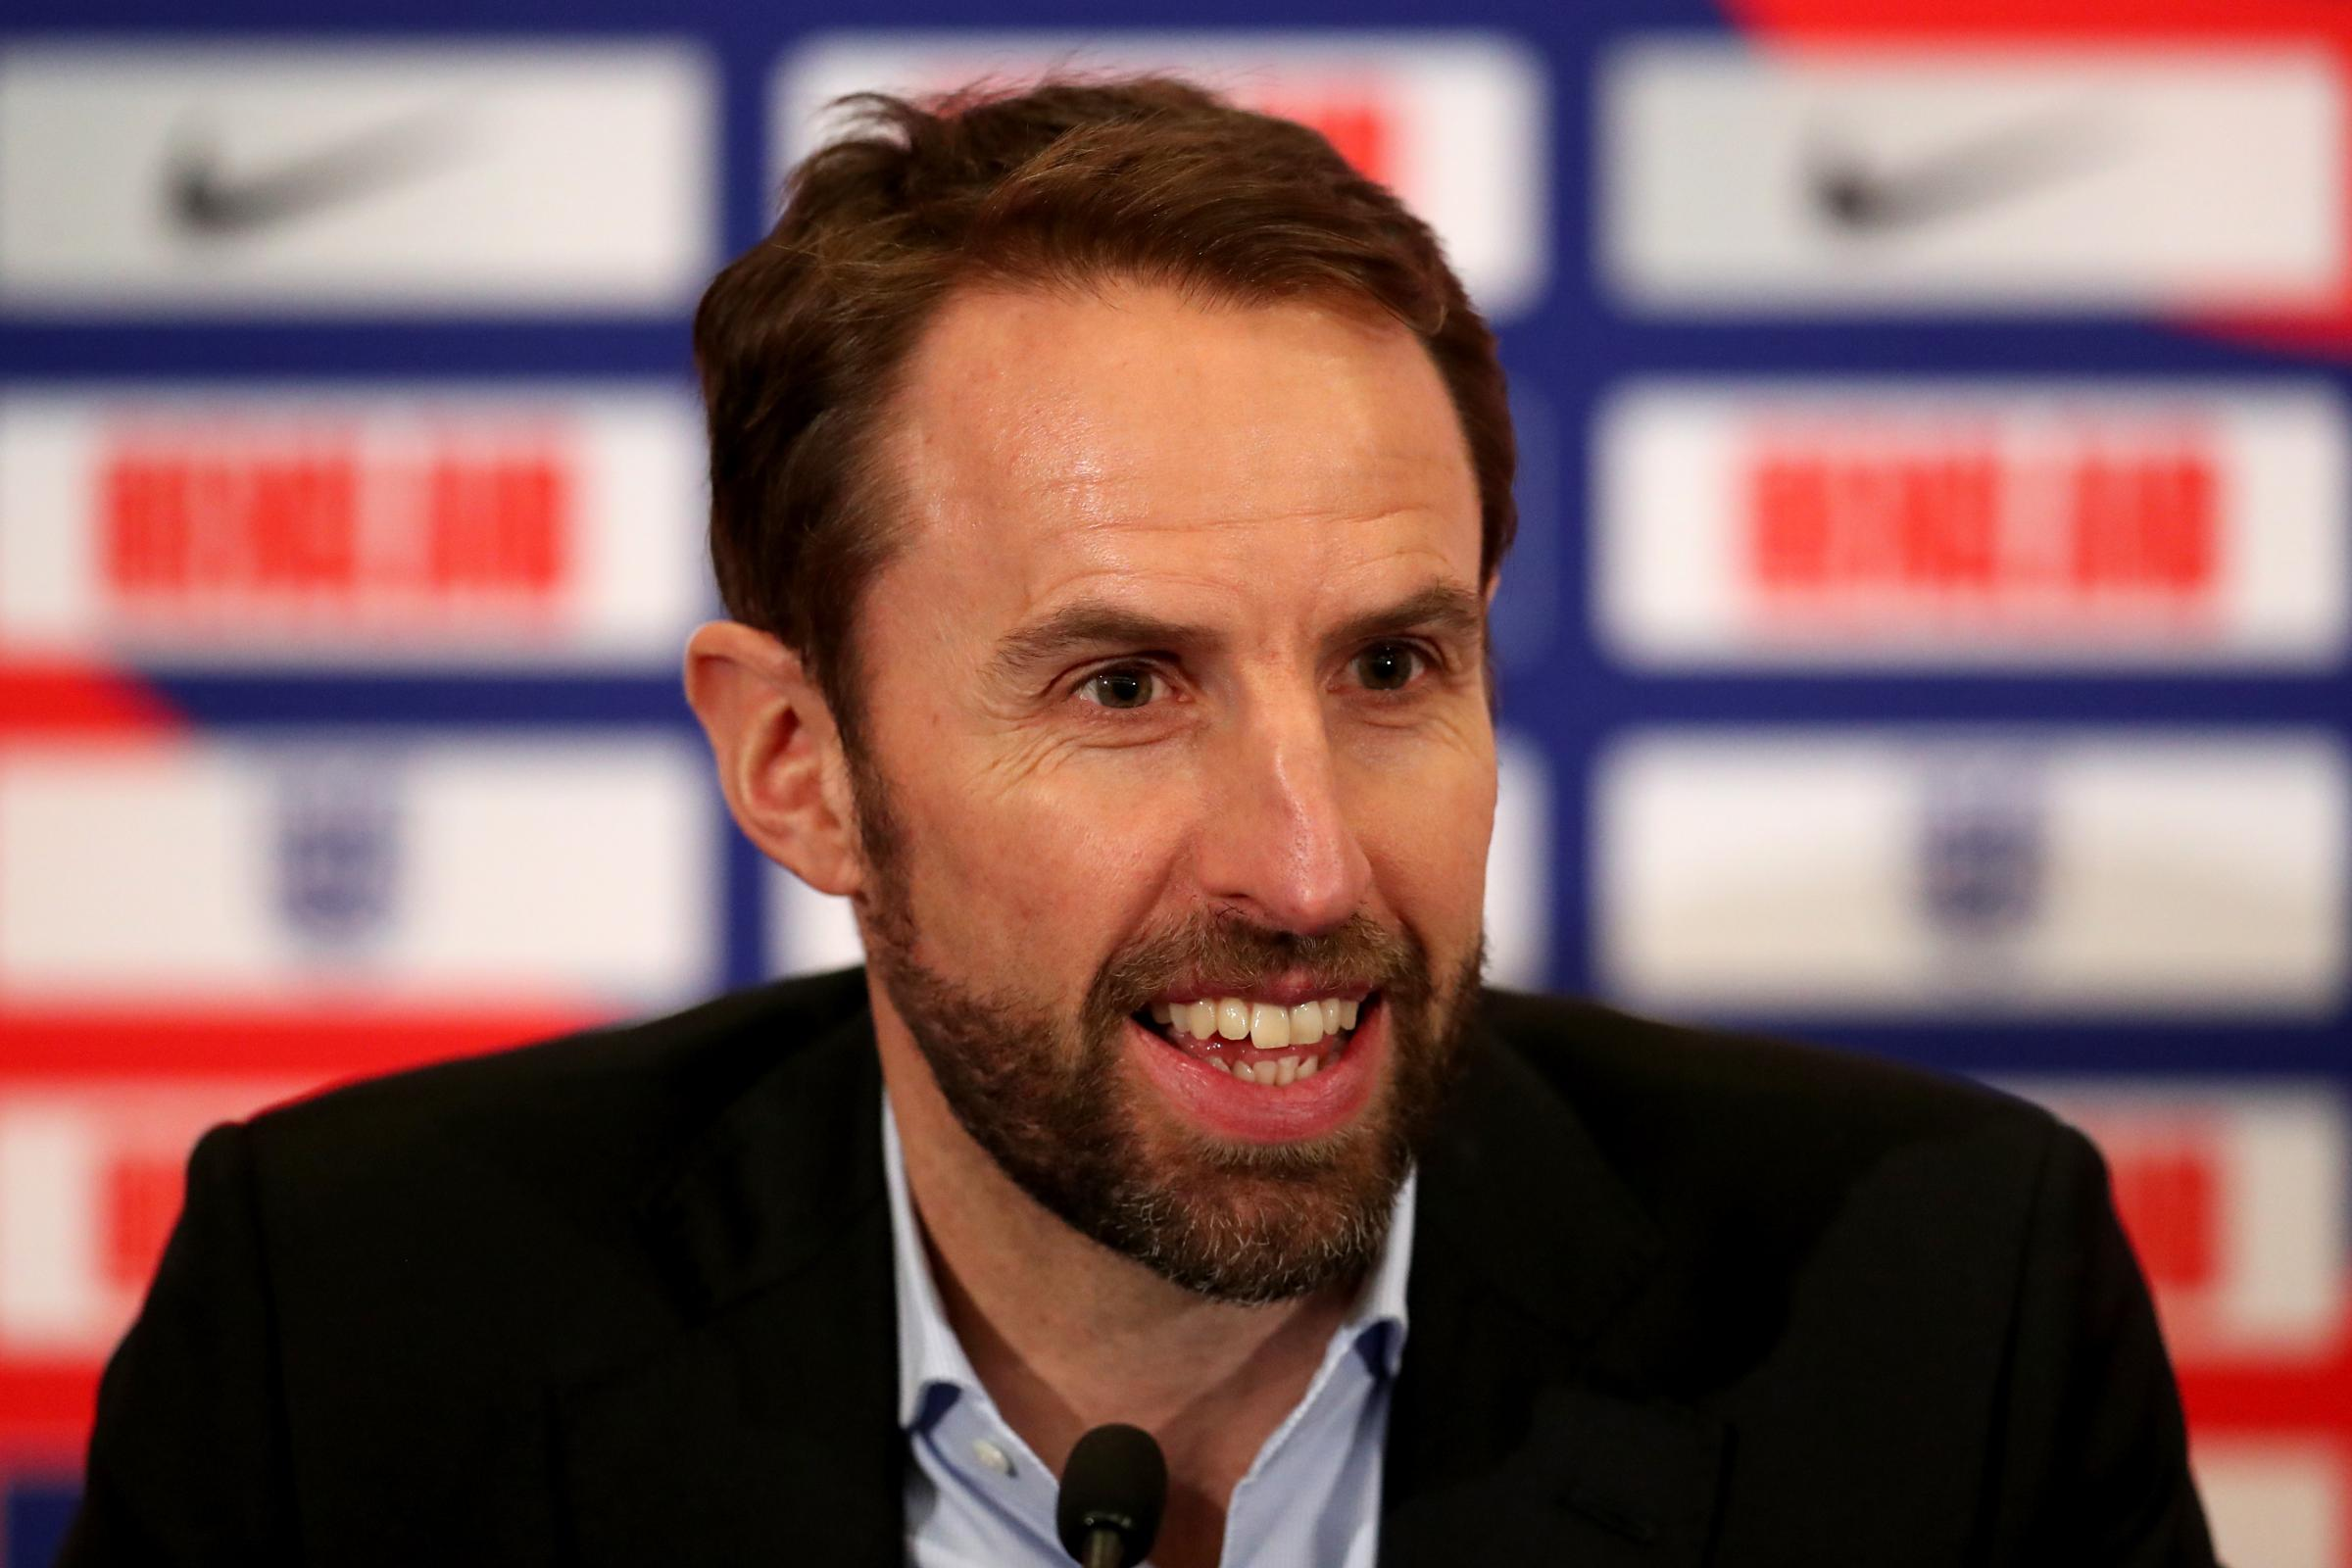 England manager Gareth Southgate has no intention of leaving his job